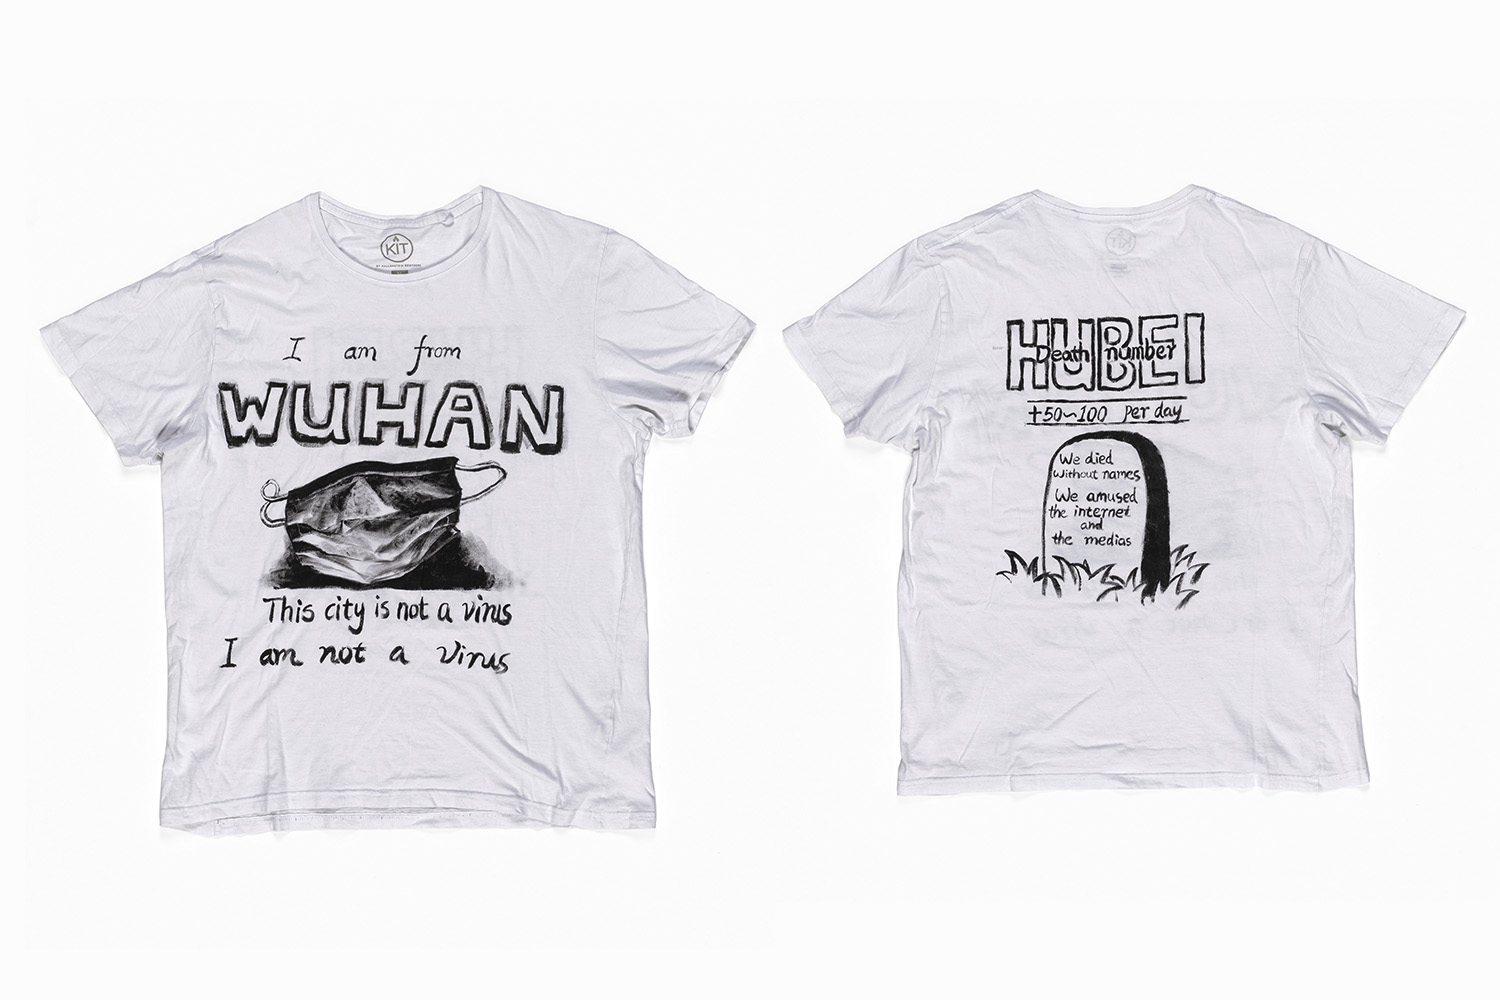 White T-shirt, on the front says 'I am from Wuhan, this city is not a virus, I am not a virus' and an illustration of a face mask, on the back a grave stone with the words 'We died without names, we amused the internet and the medias' with 'death number – 50 to 100 per day' written above